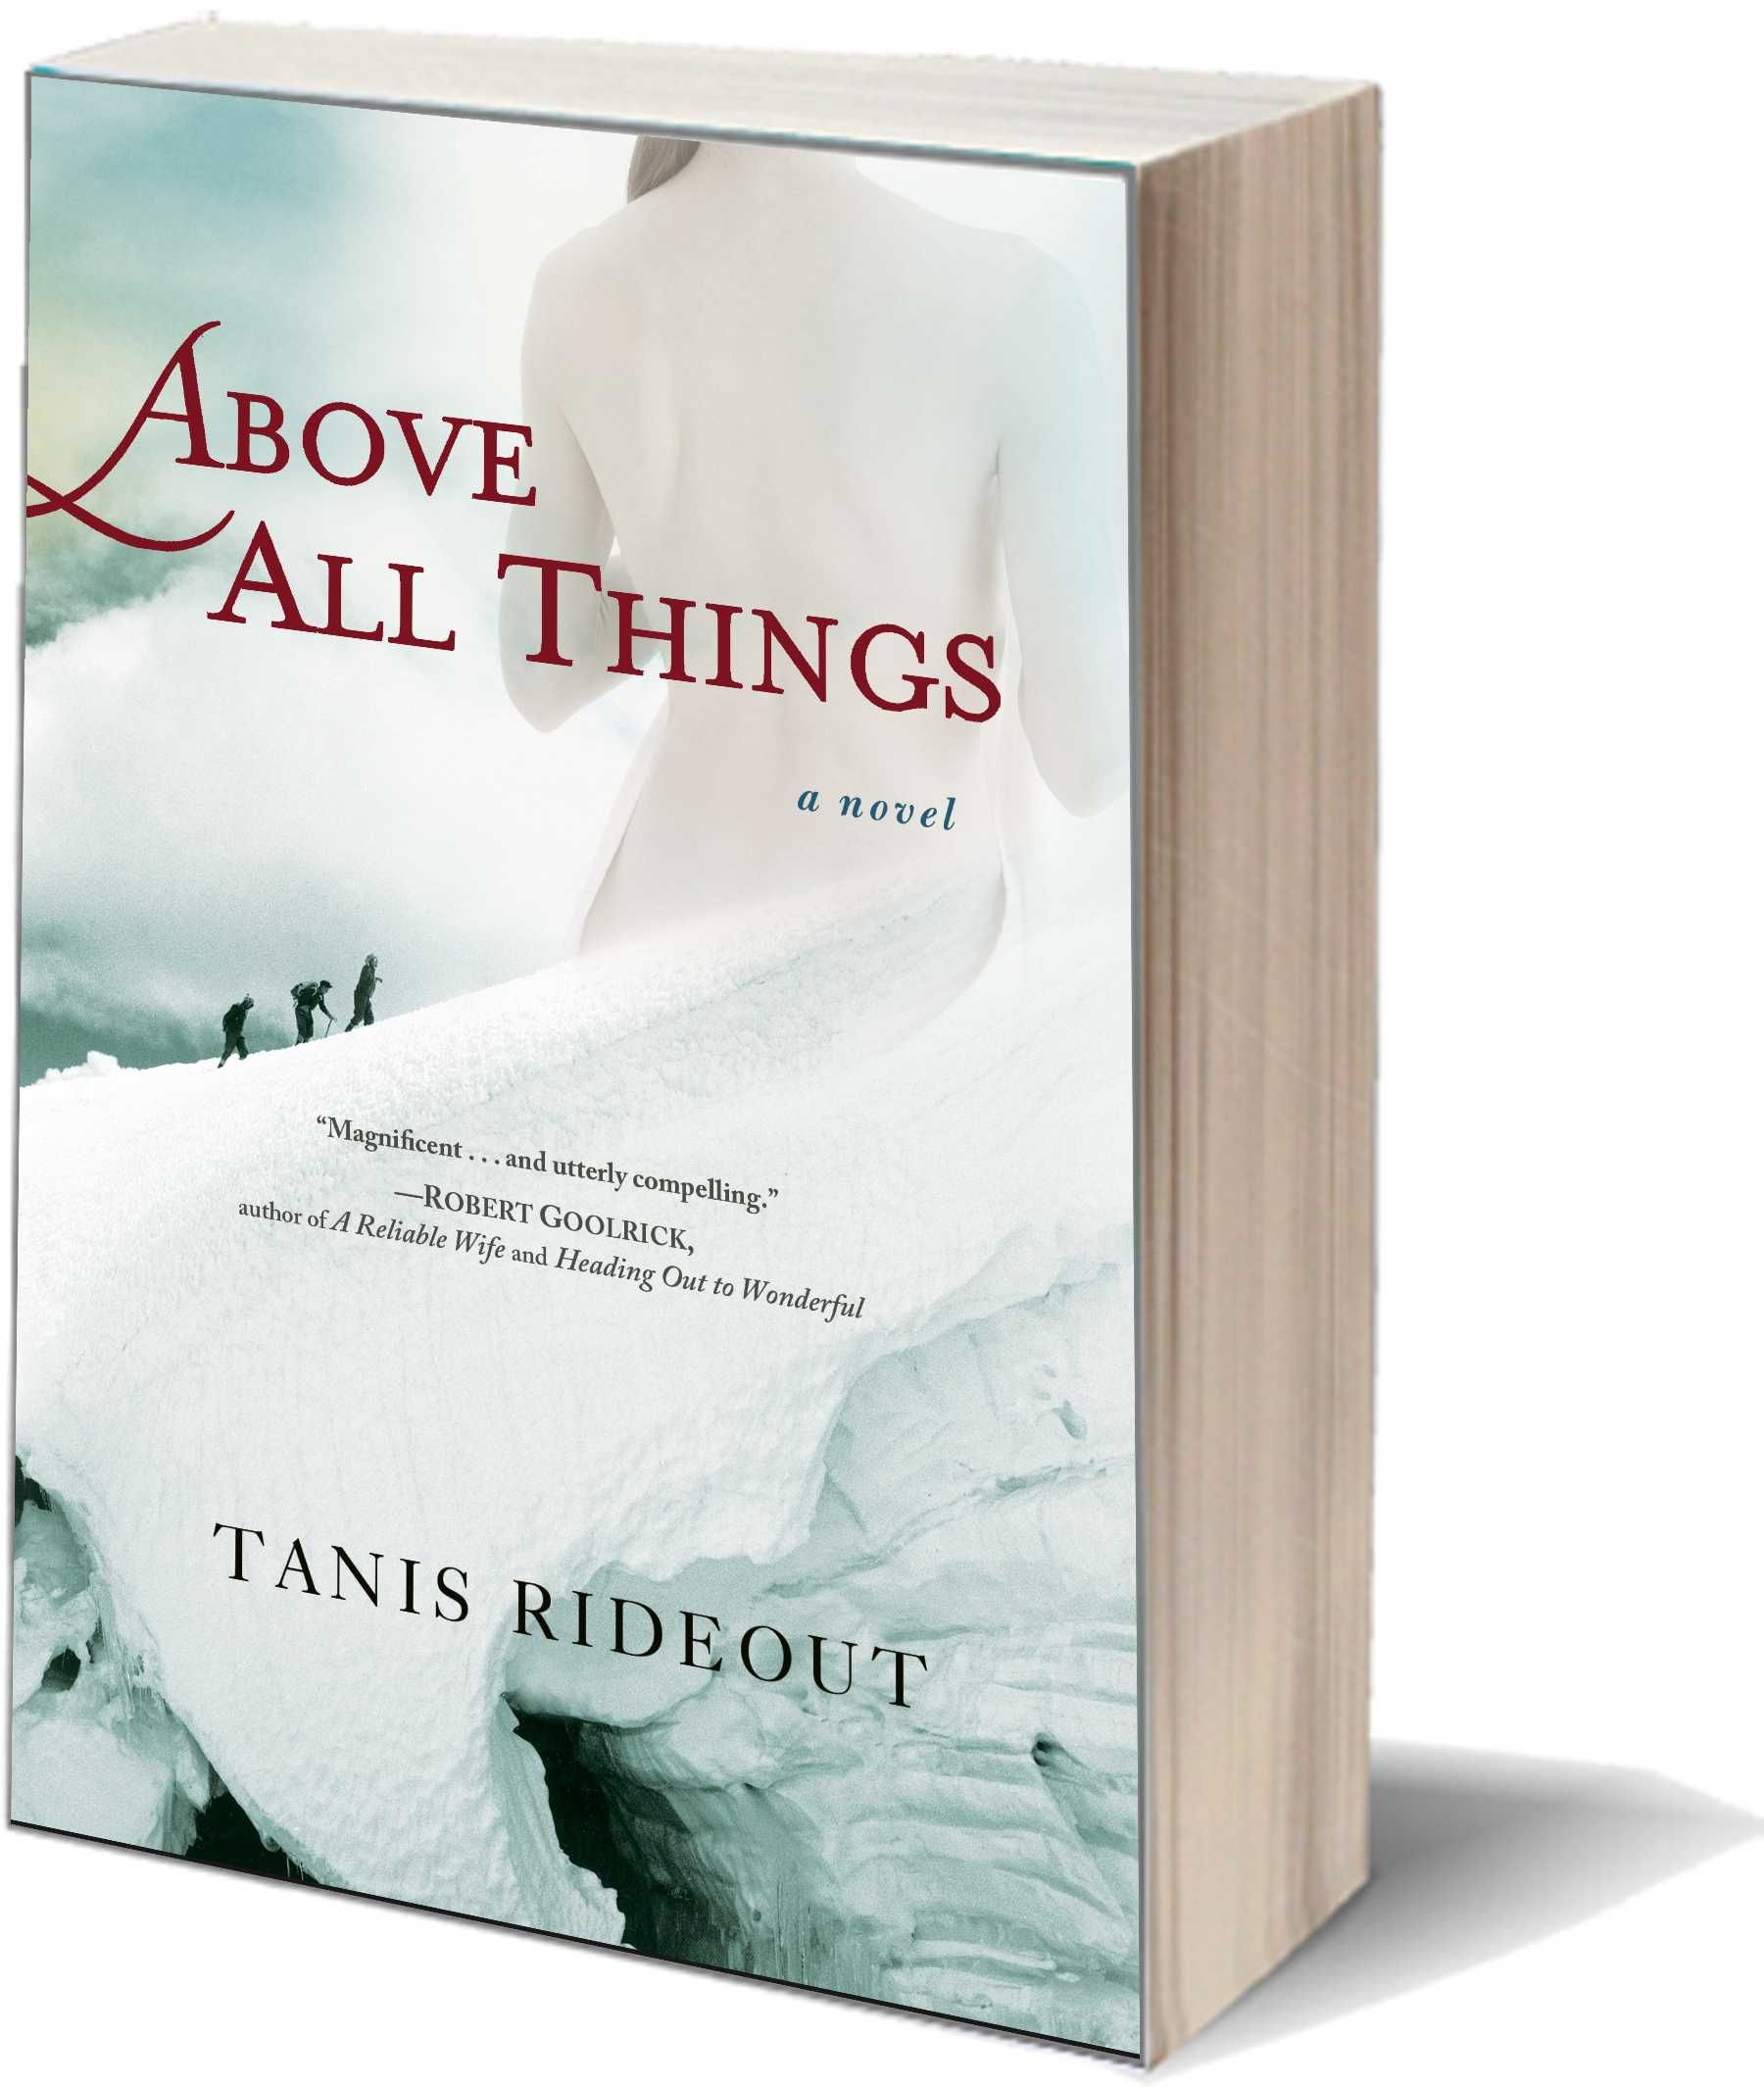 Above All Things by Tanis Rideout. Extraordinary and heartbreaking! An interwoven story of George Mallory's ill-fated 1924 attempt to be the first man to conquer Mount Everest and a single day in the life of his wife as she waits at home in England for news of his return.